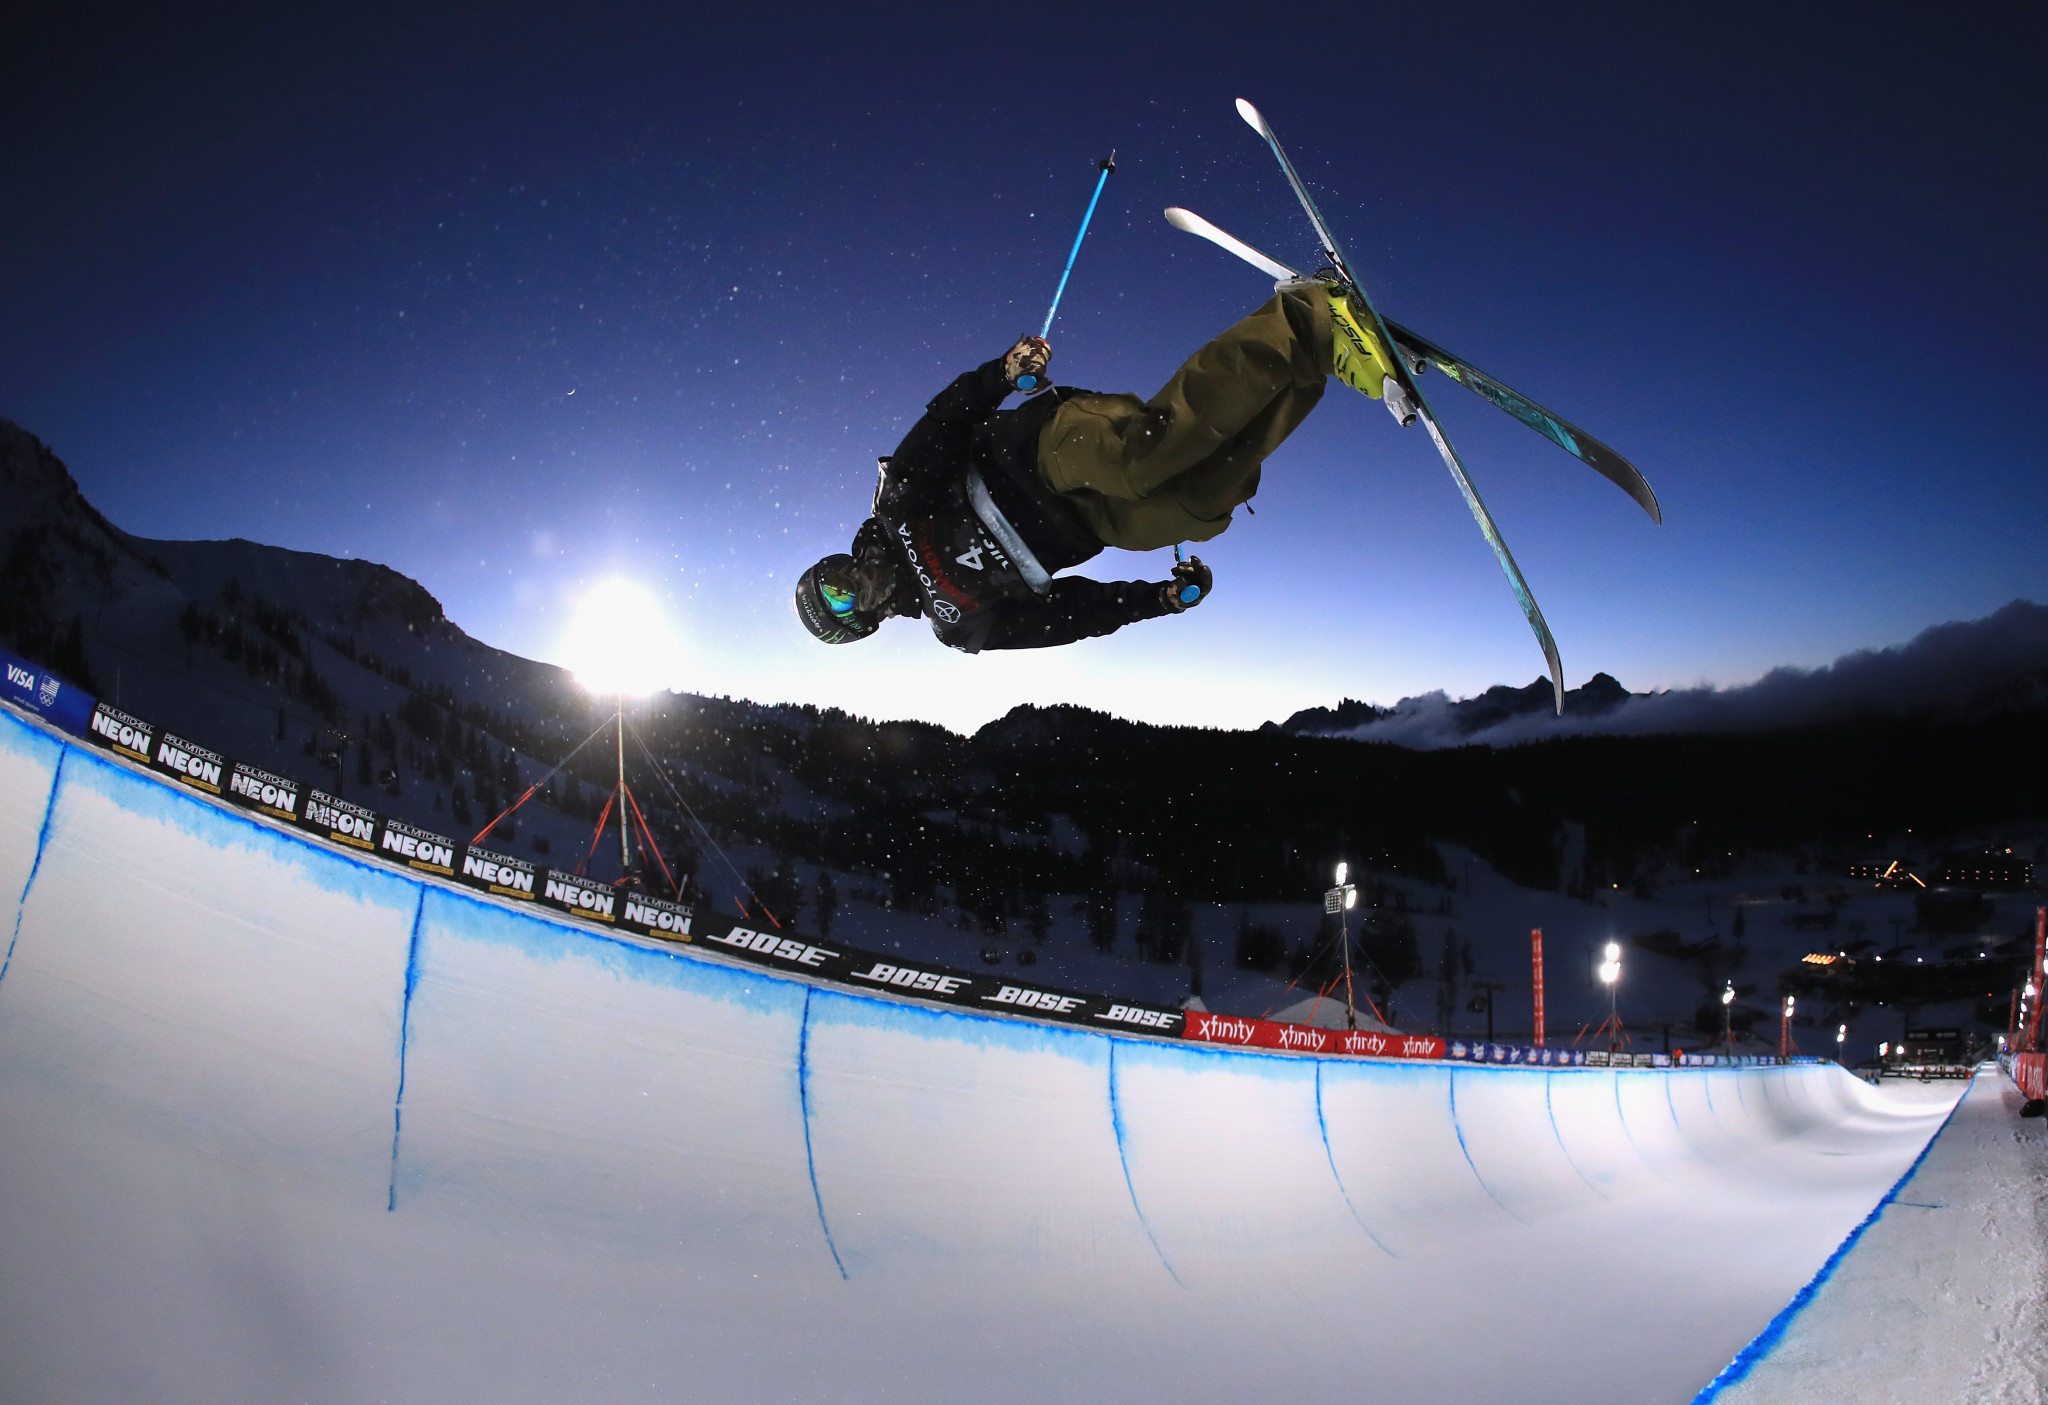 Leysin will also host the halfpipe competition during the Lausanne 2020 Winter Youth Olympic Games ©Lausanne 2020